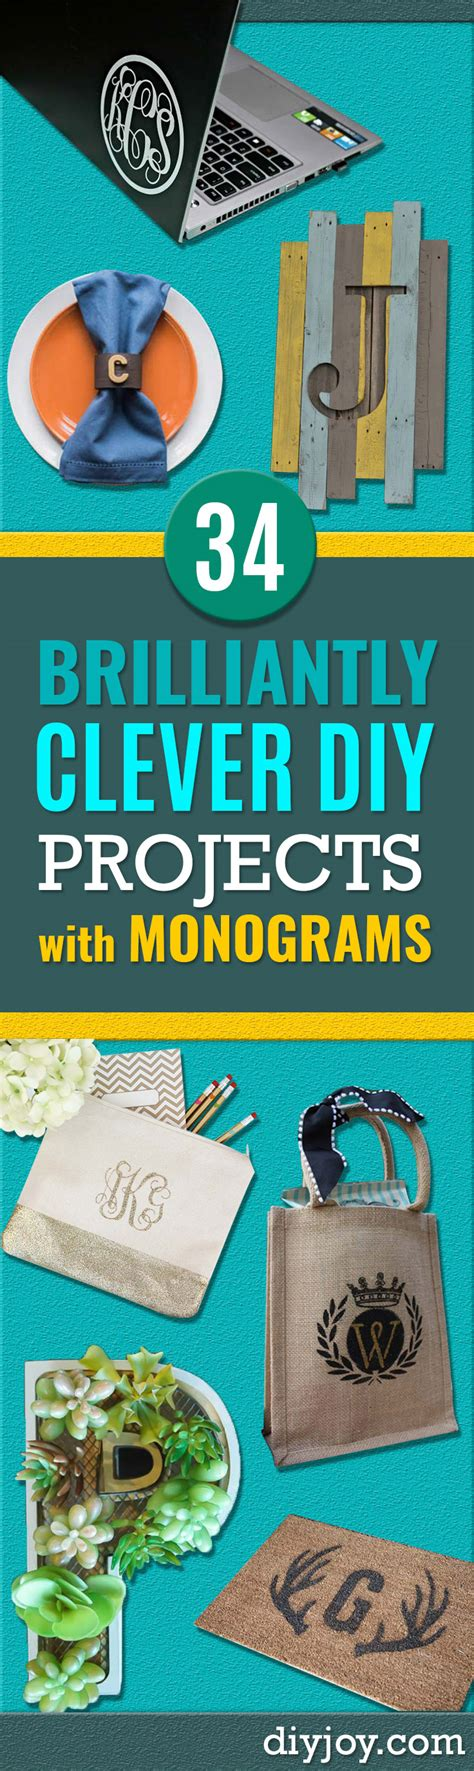 monogram diy projects 34 brilliantly clever diy projects with monograms